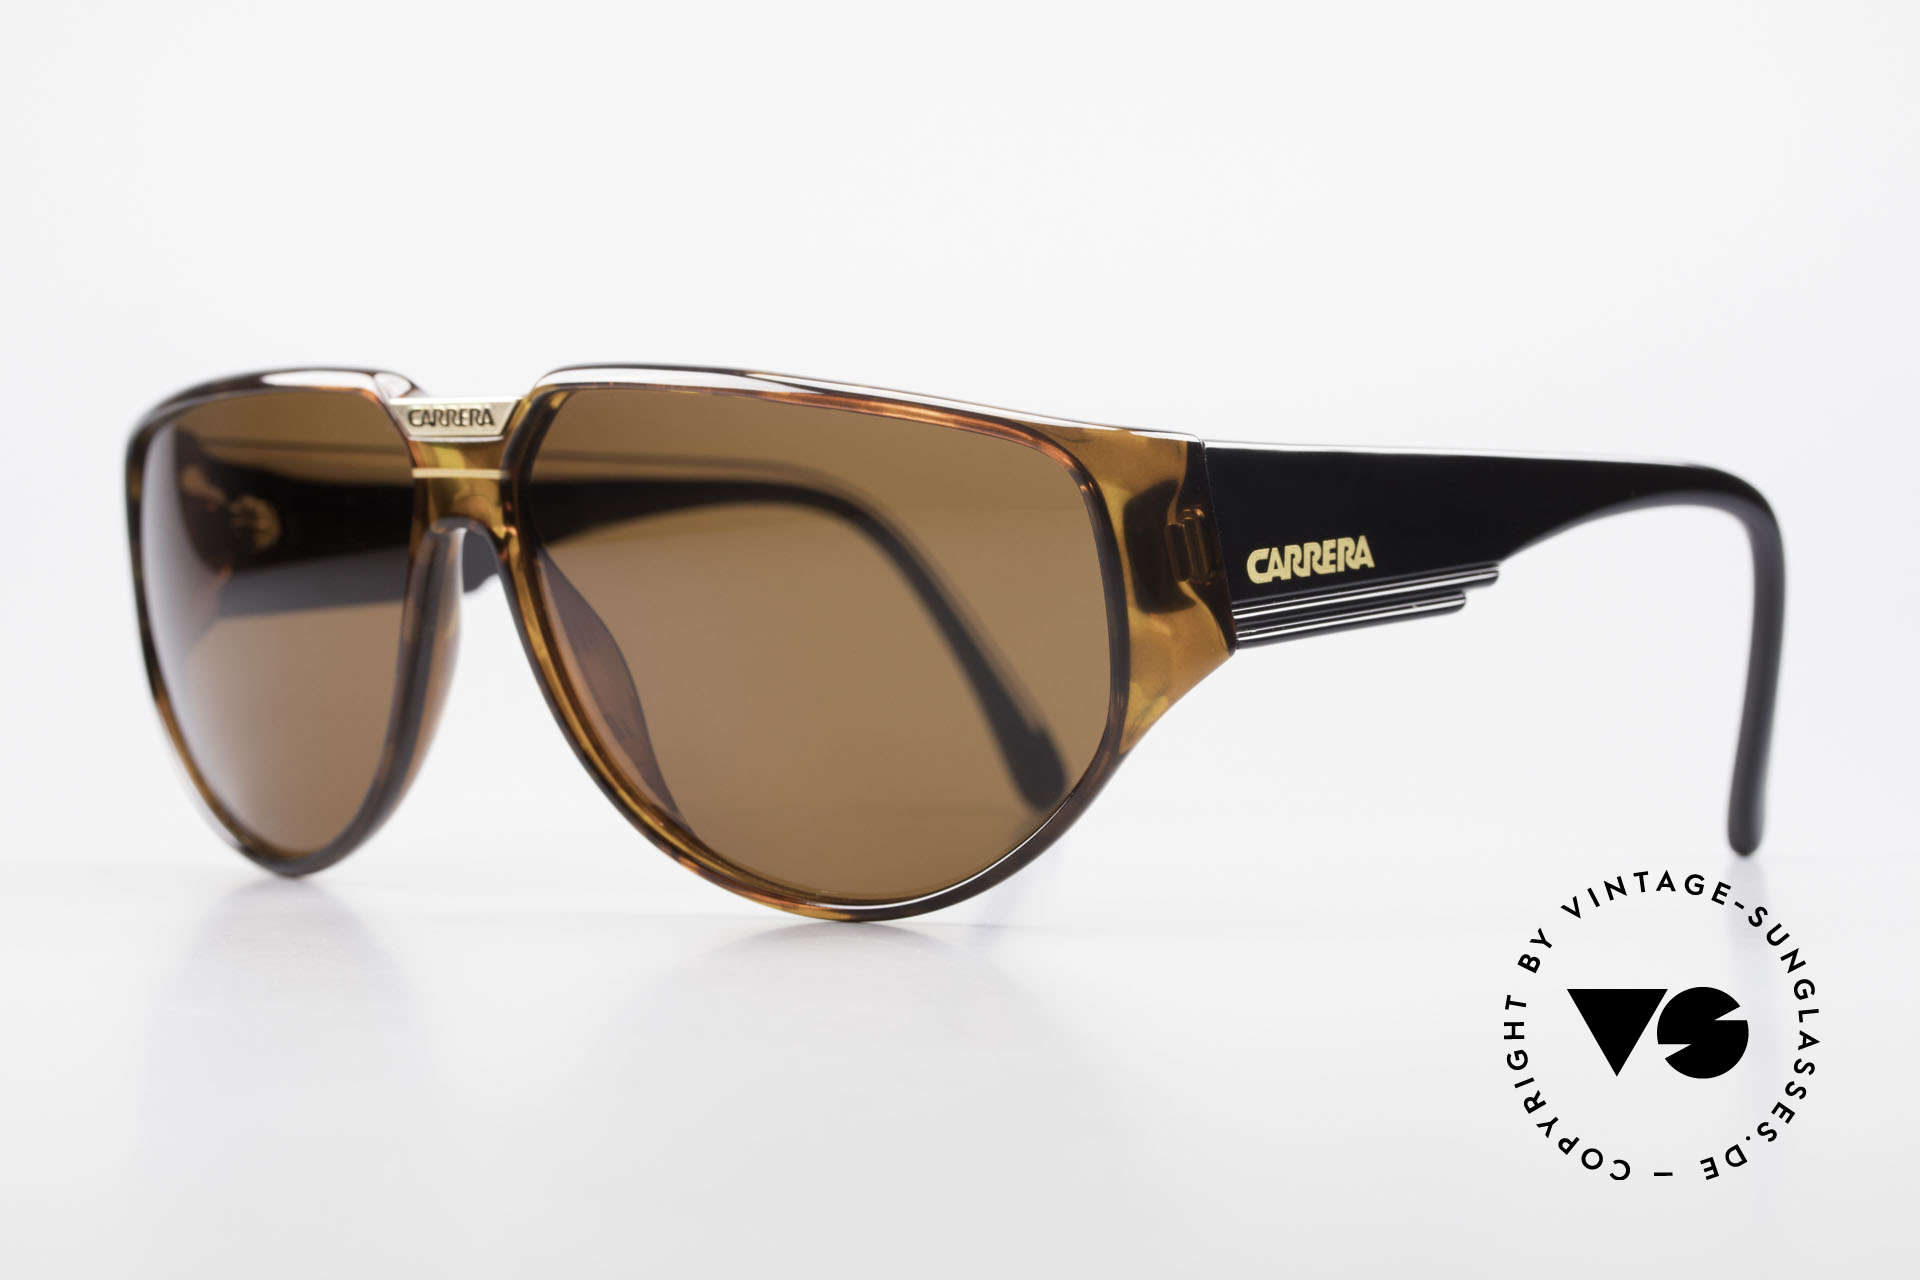 Carrera 5417 Rare 80's Sportsglasses Optyl, massive frame with beamy temples; + Carrera case, Made for Men